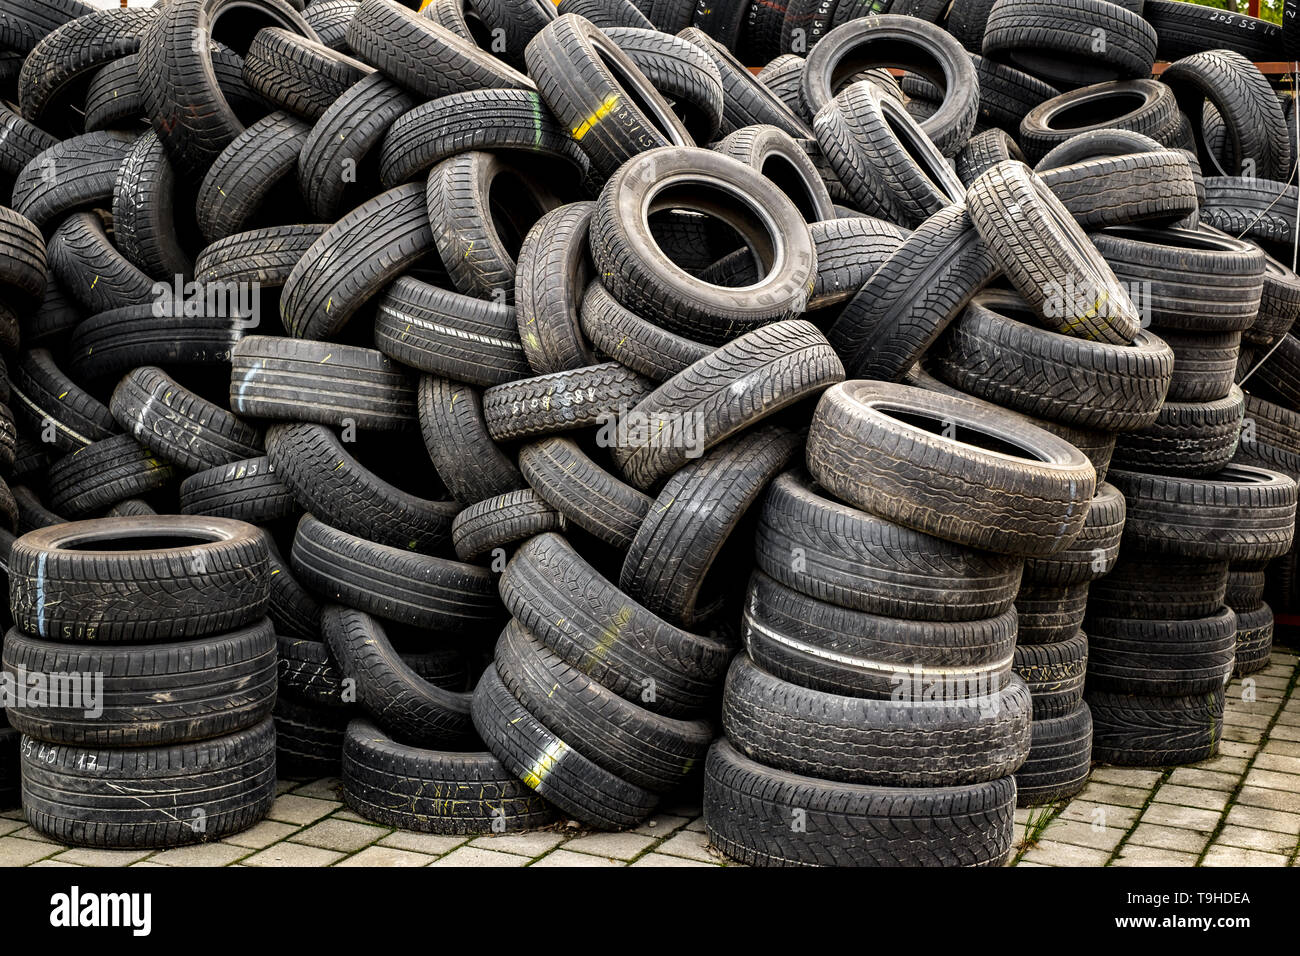 Sibiu, Romania - May 04, 2019. Used tire stacks in Workshop vulcanization yard - Stock Image